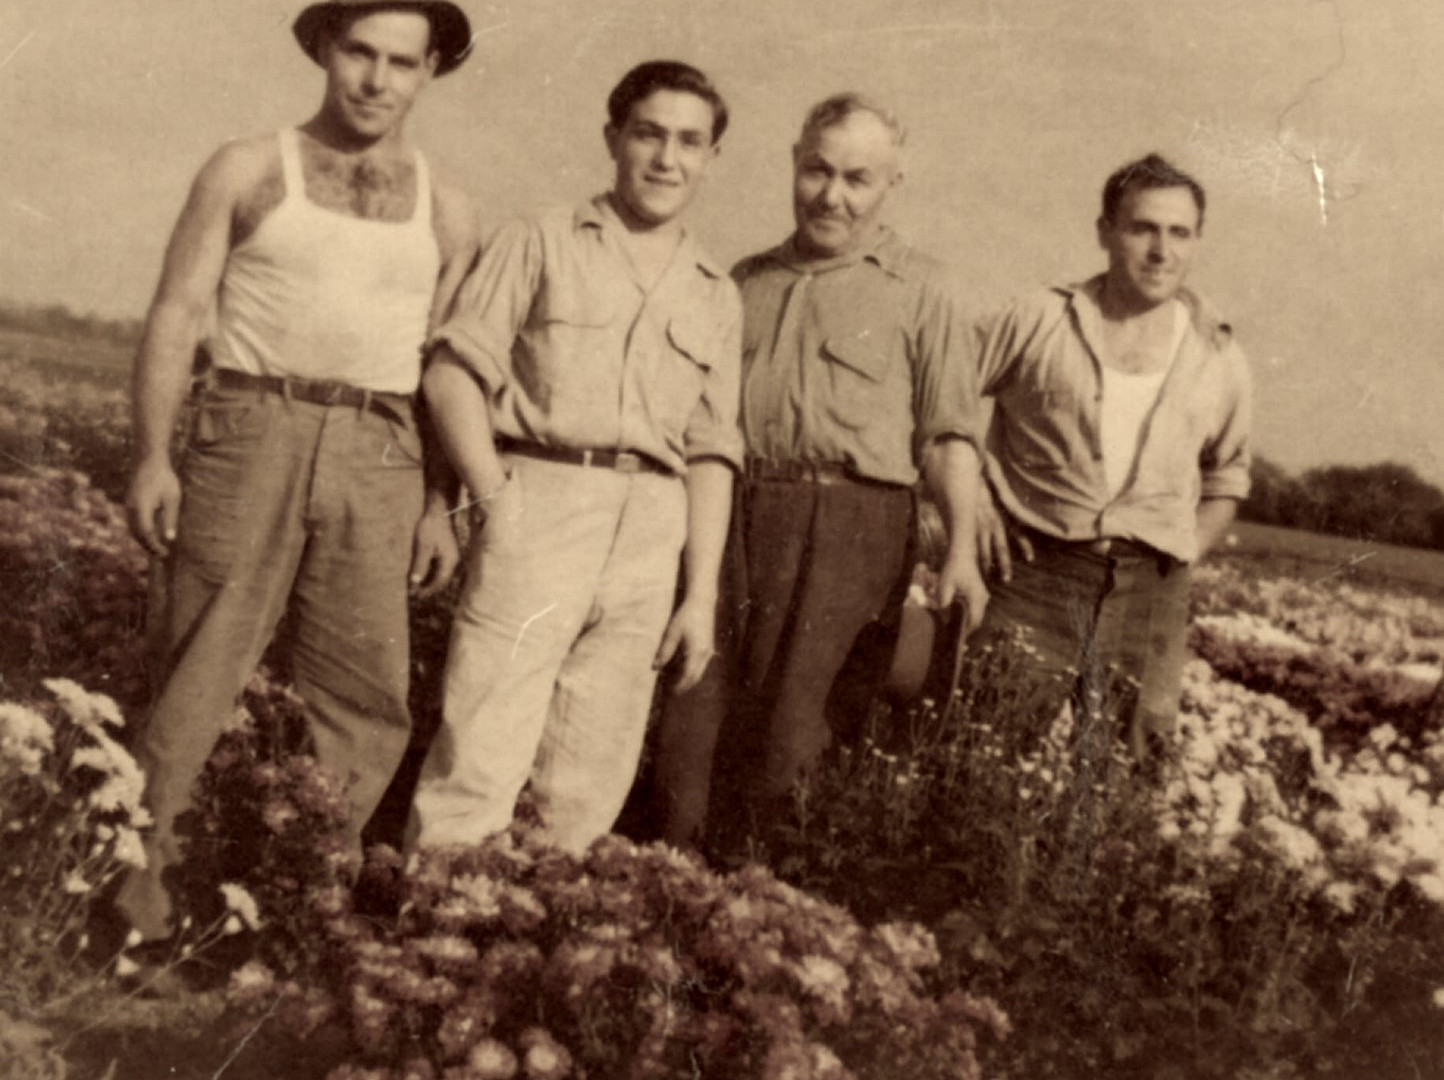 Brothers and Father in mum field 1947.jp